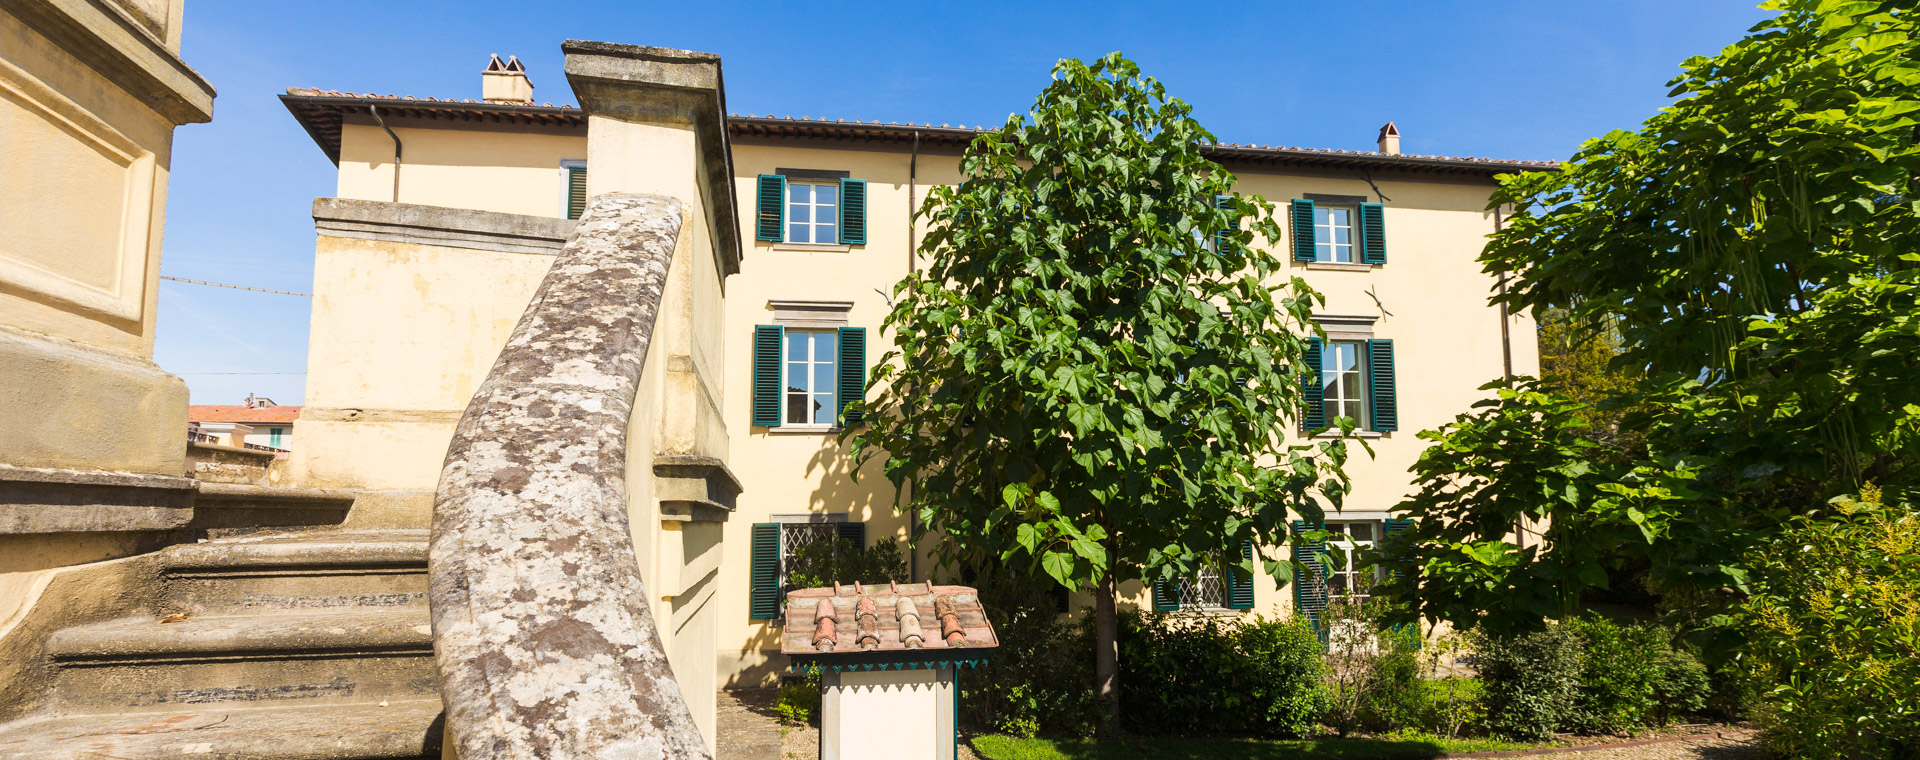 Tuscany Sansepolcro Villa for sale